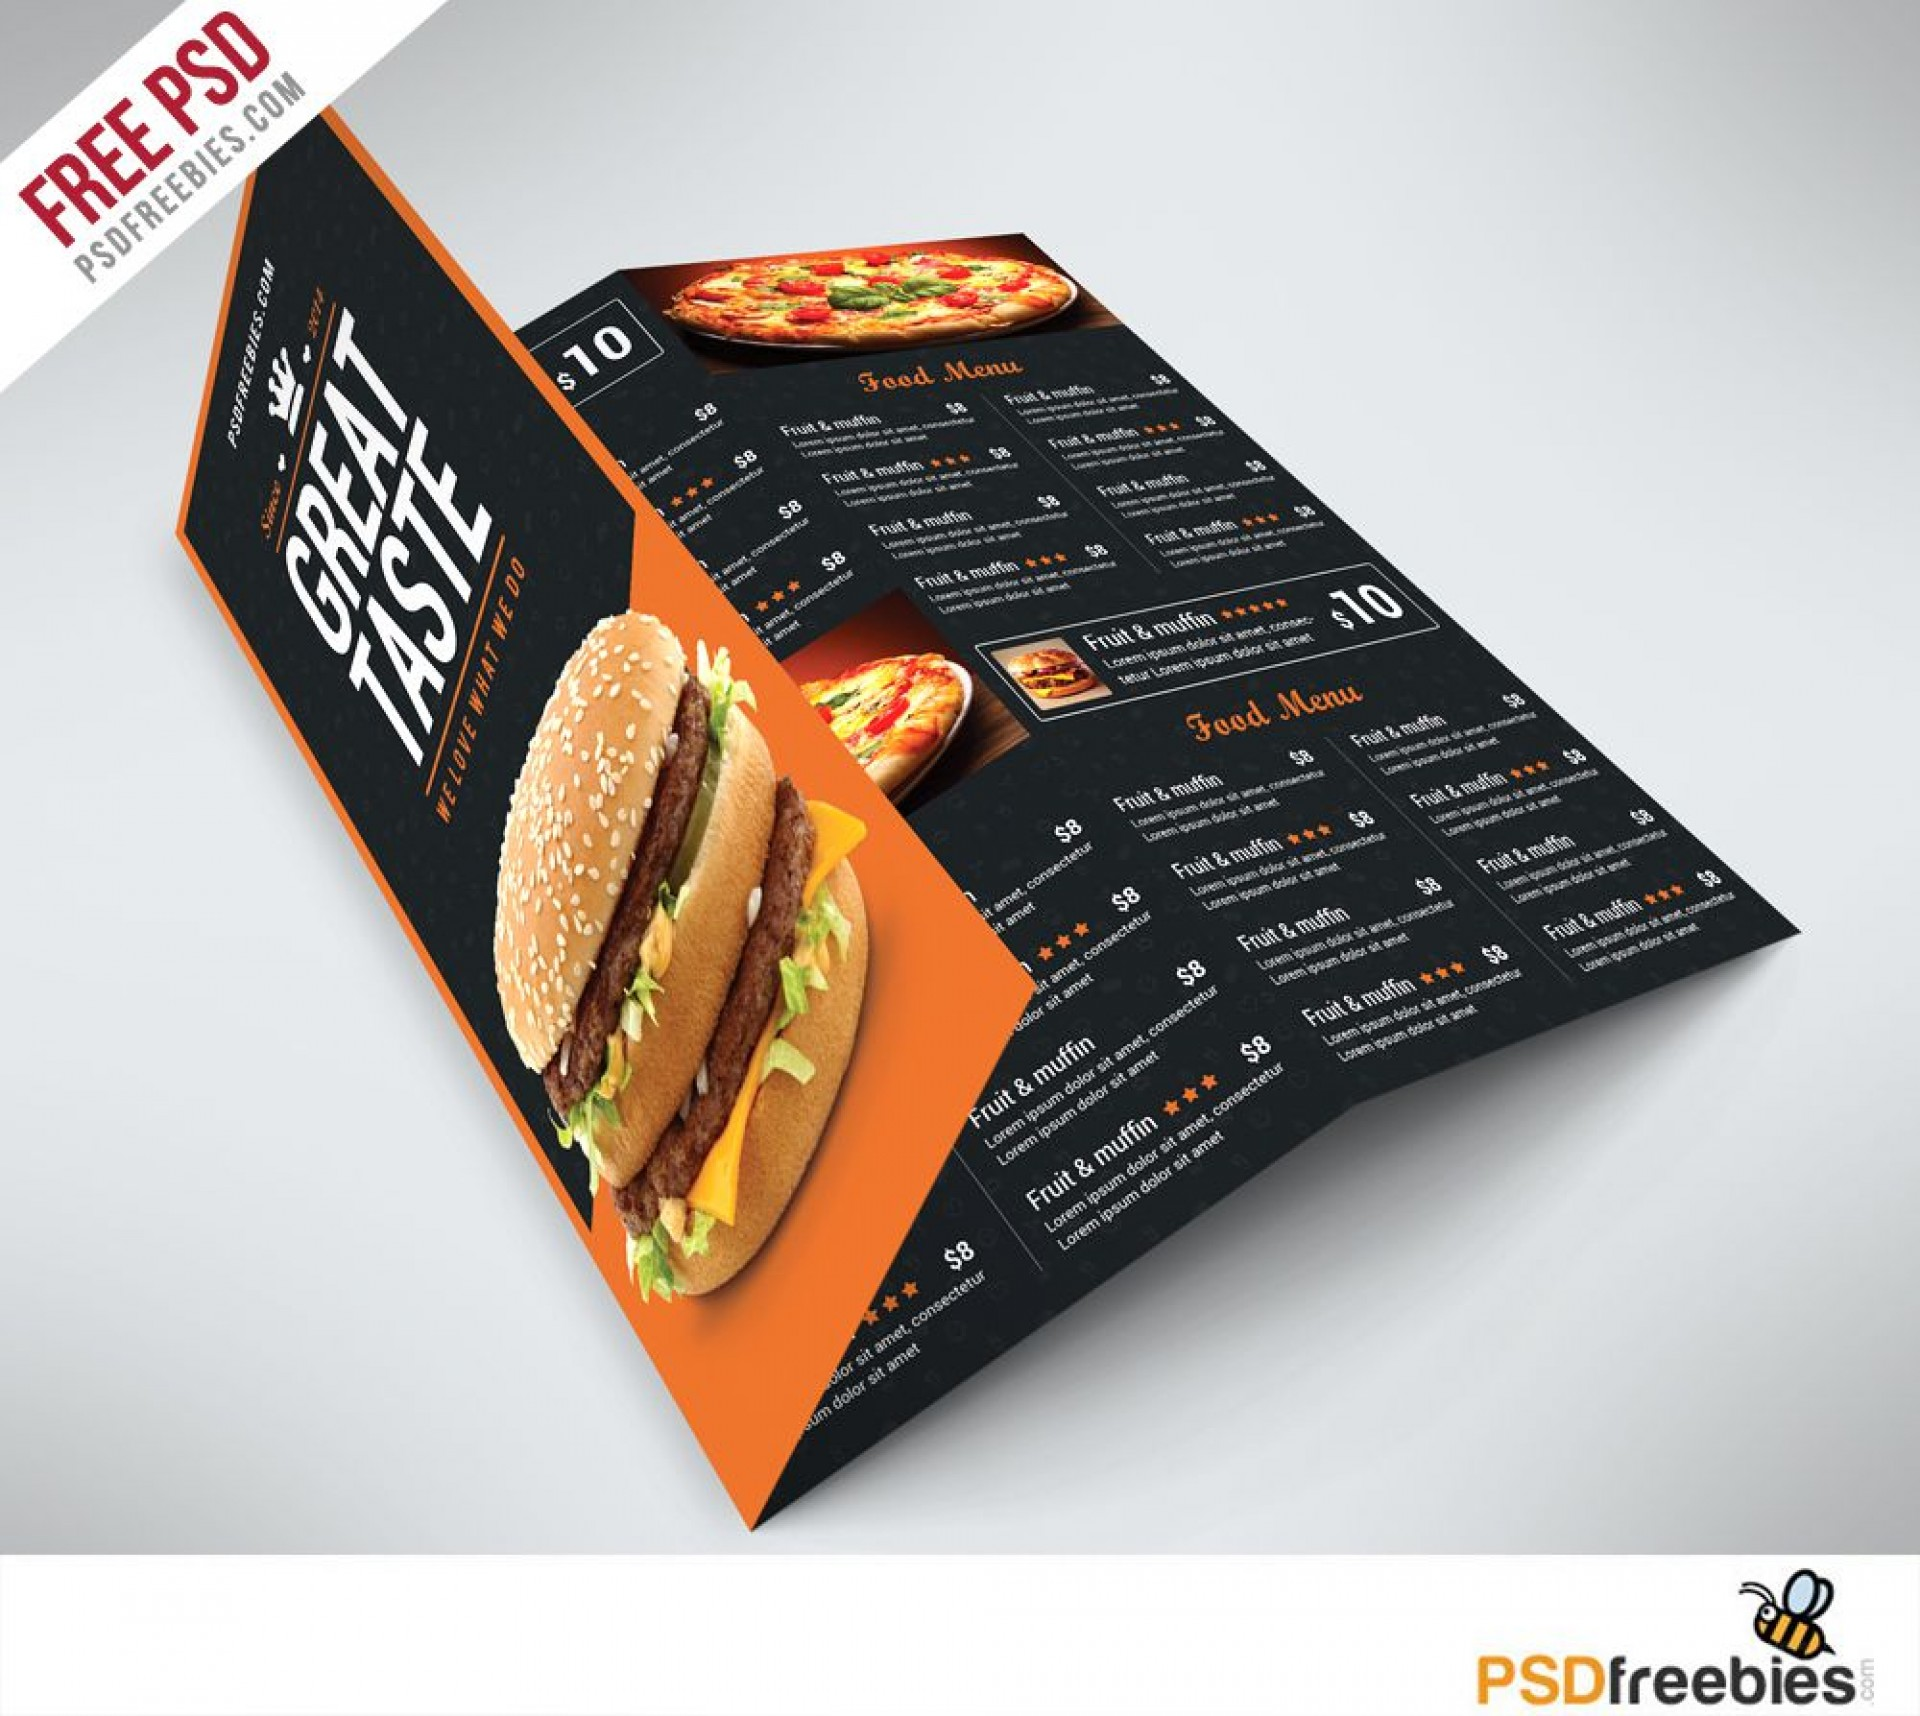 003 Unbelievable Tri Fold Menu Template Free Example  Tri-fold Restaurant Food Psd Wedding Brochure Cafe Download1920